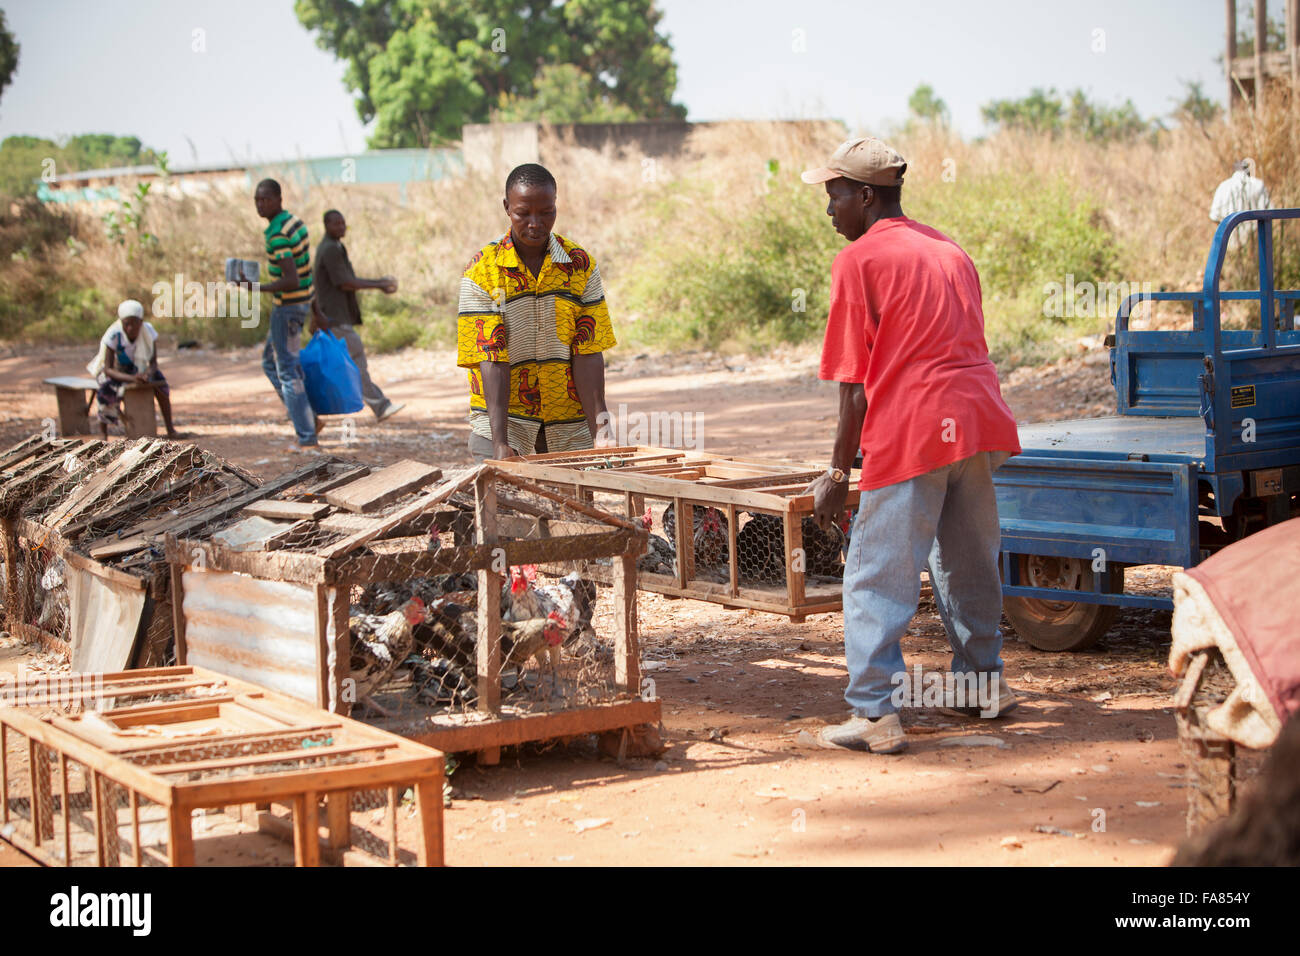 A vendor loads chickens onto his trailer at the poultry market in Banfora, Burkina Faso. - Stock Image